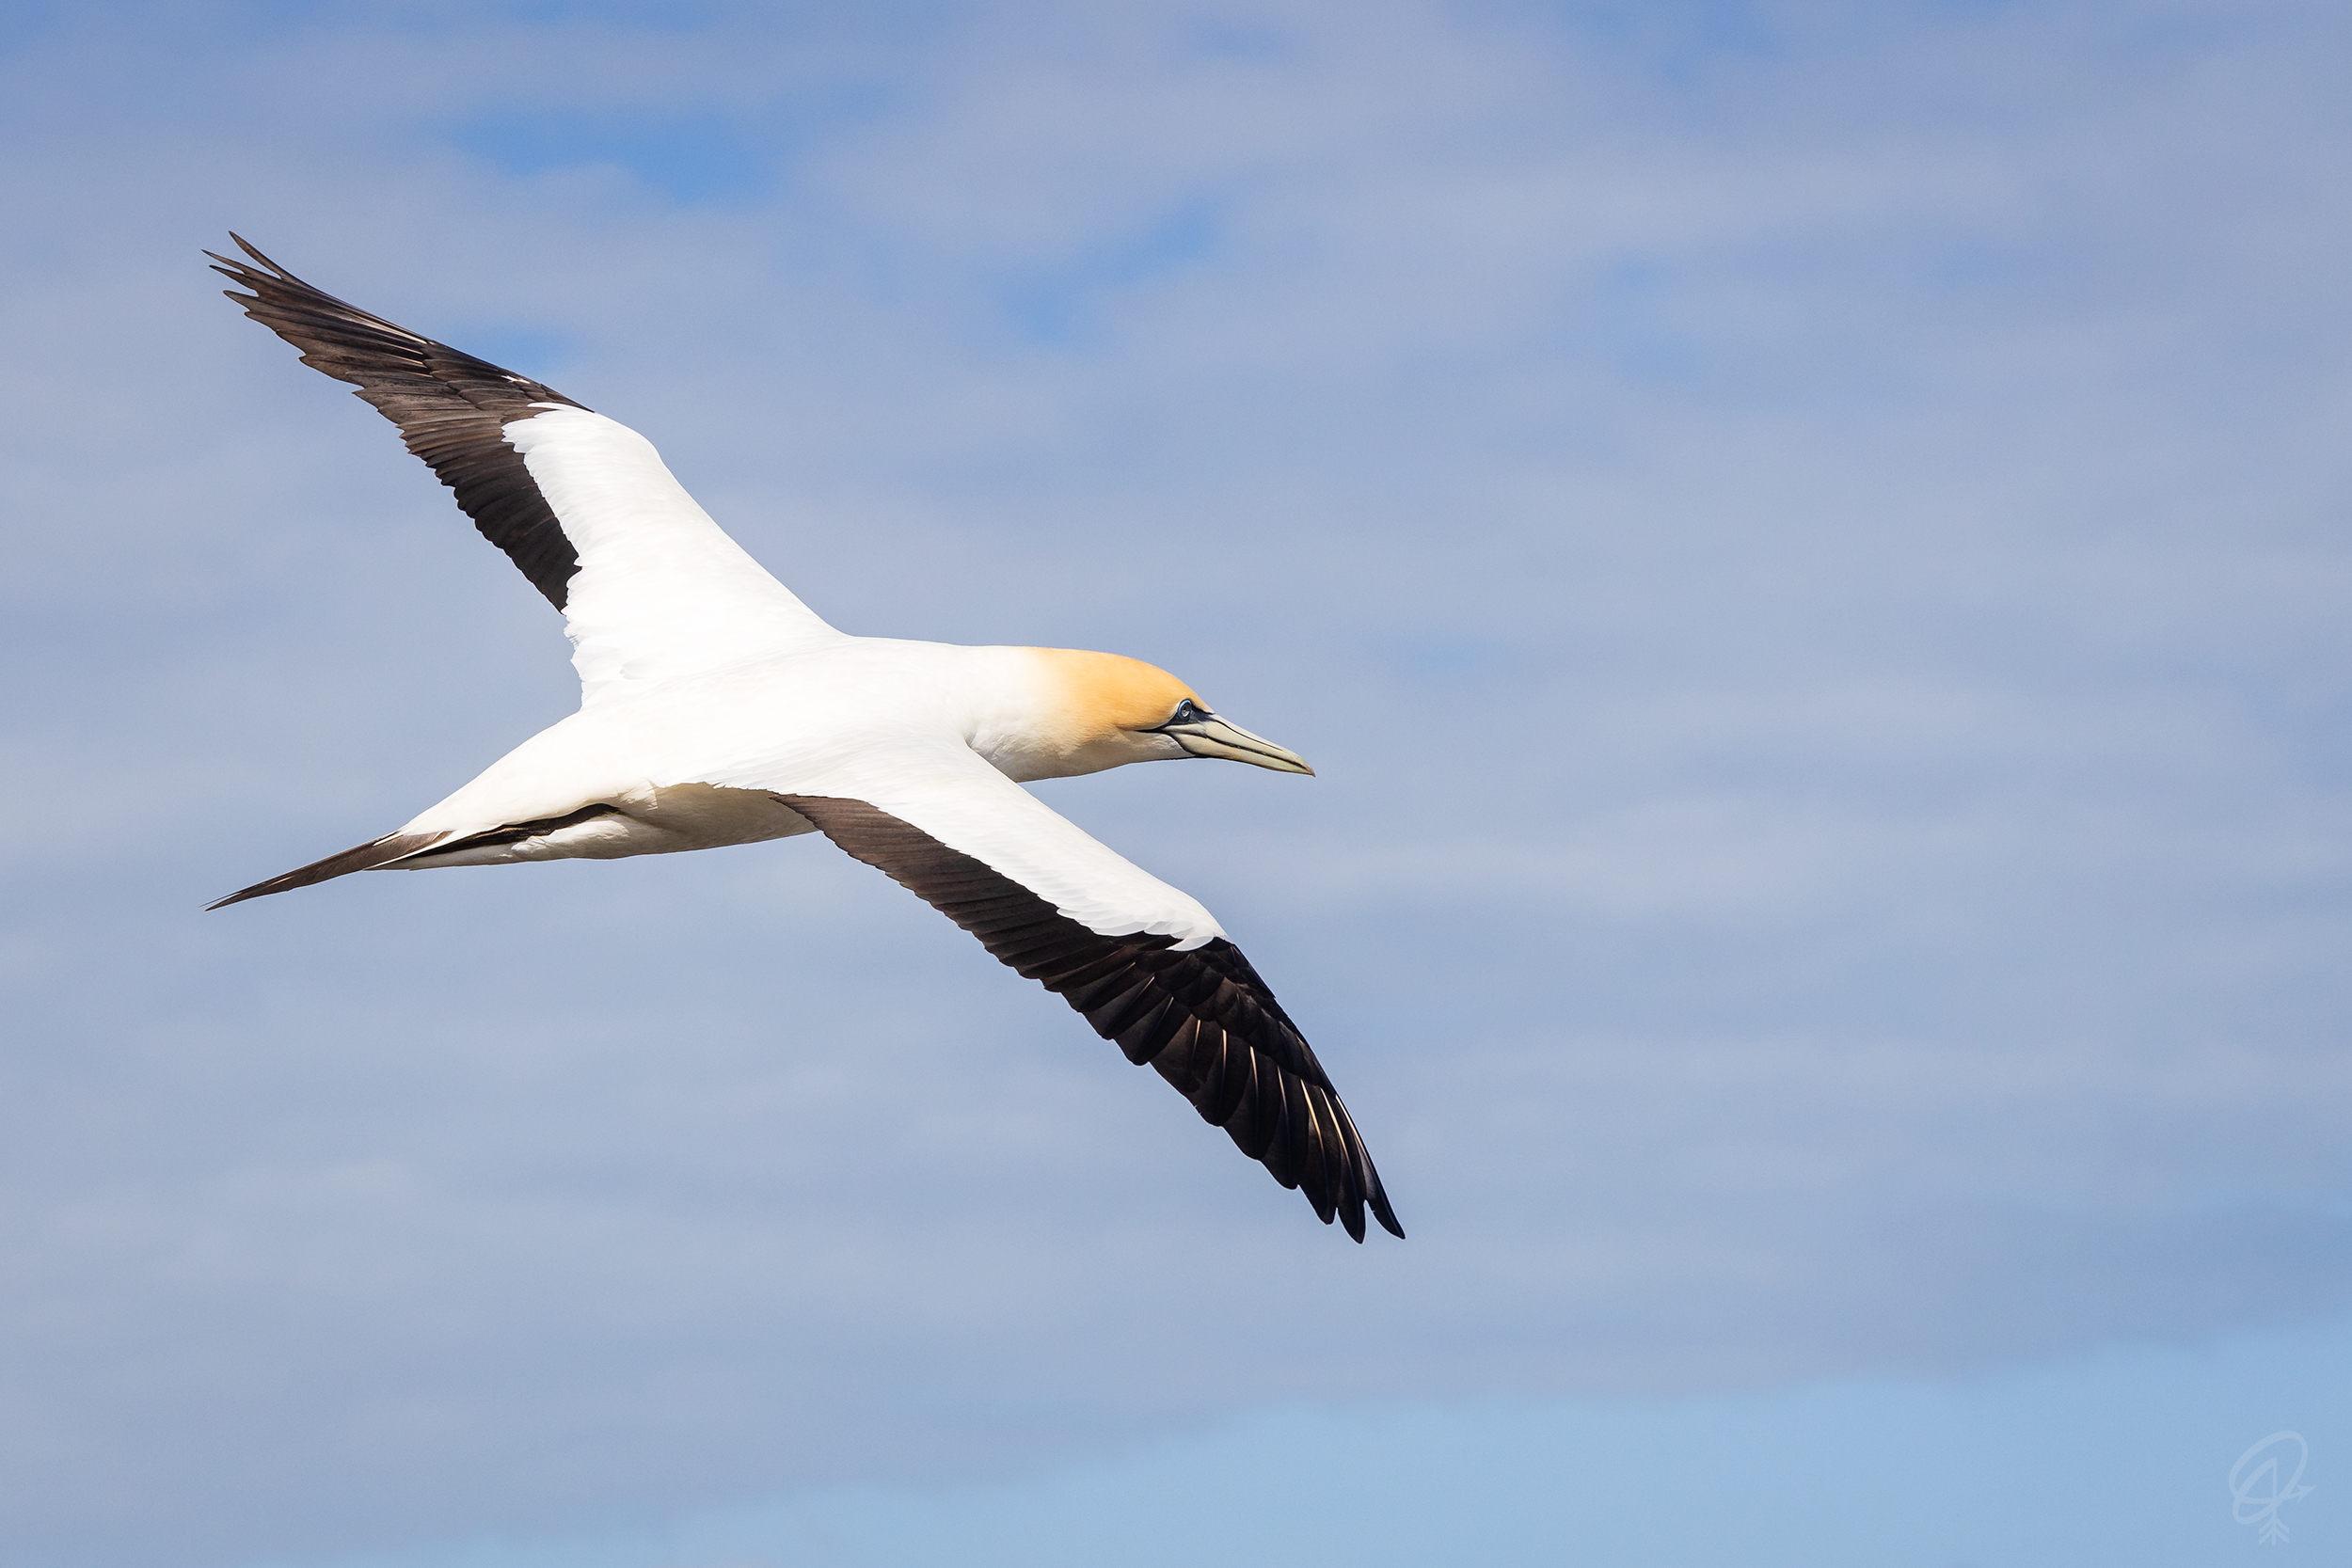 Unique places to visit on New Zealand's North Island include the gannet colony near Auckland